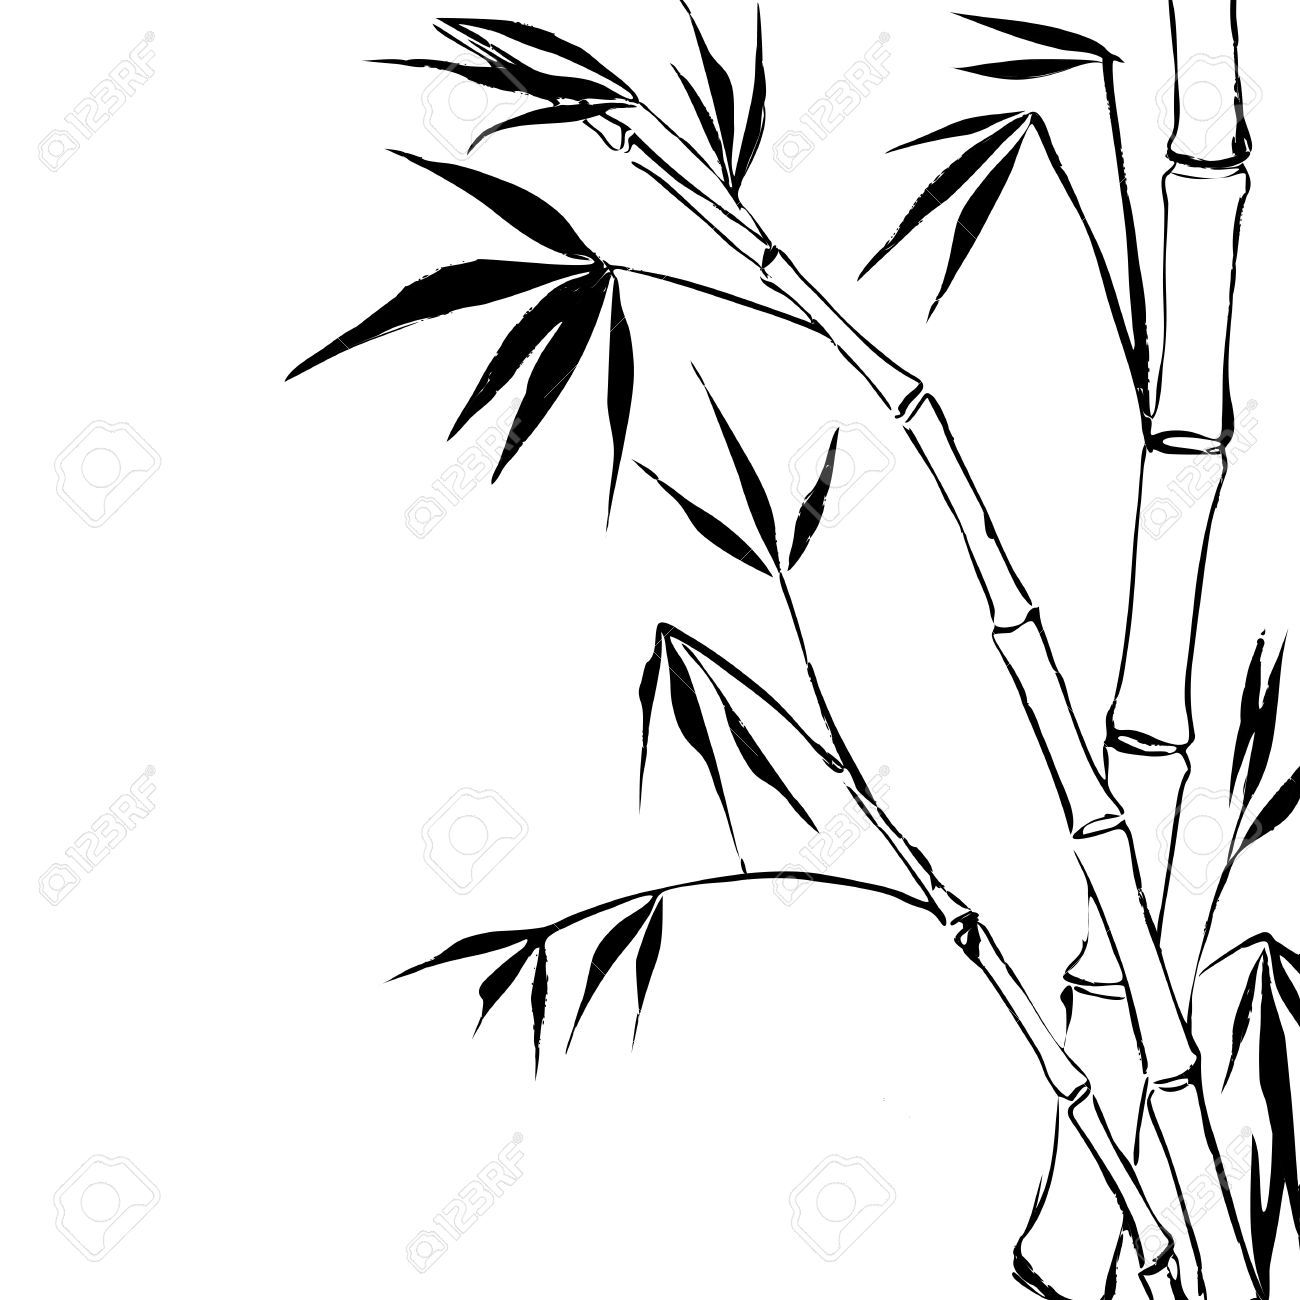 bamboo coloring pages - bamboo plants drawing images